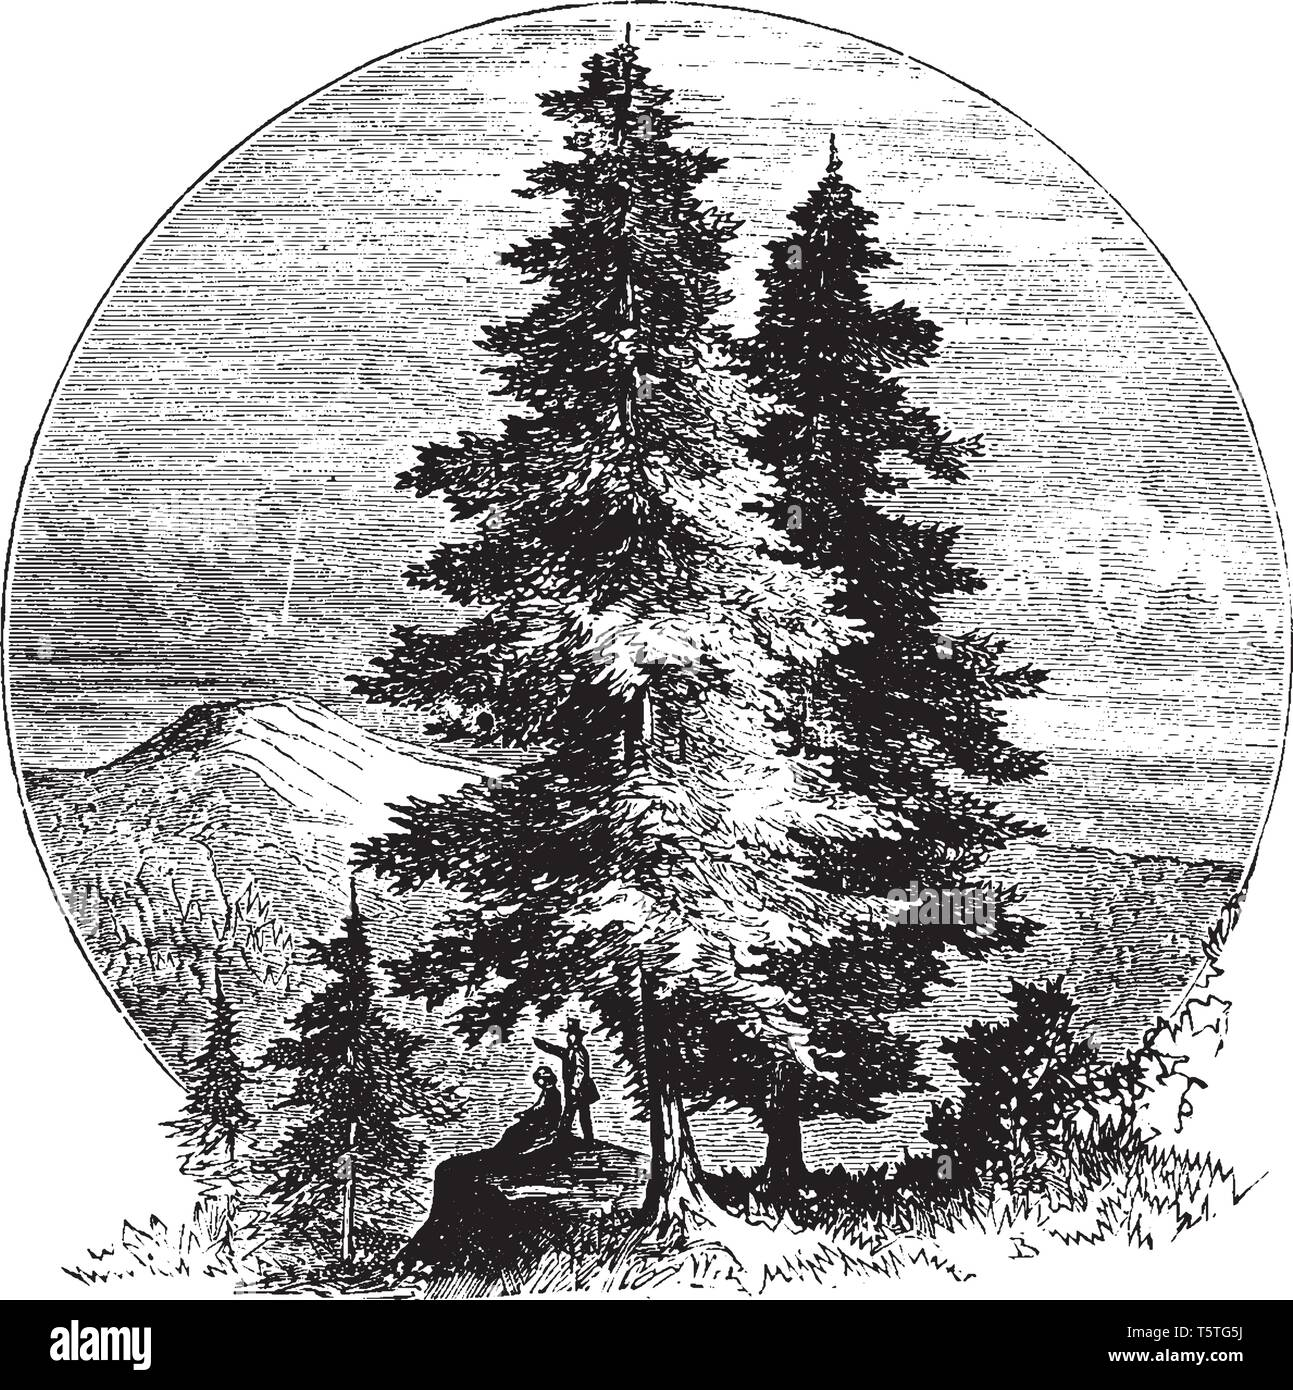 A picture of some pine trees near the mountains and forest. A couple can also be seen relaxing under the shadow of pine trees, vintage line drawing or Stock Vector